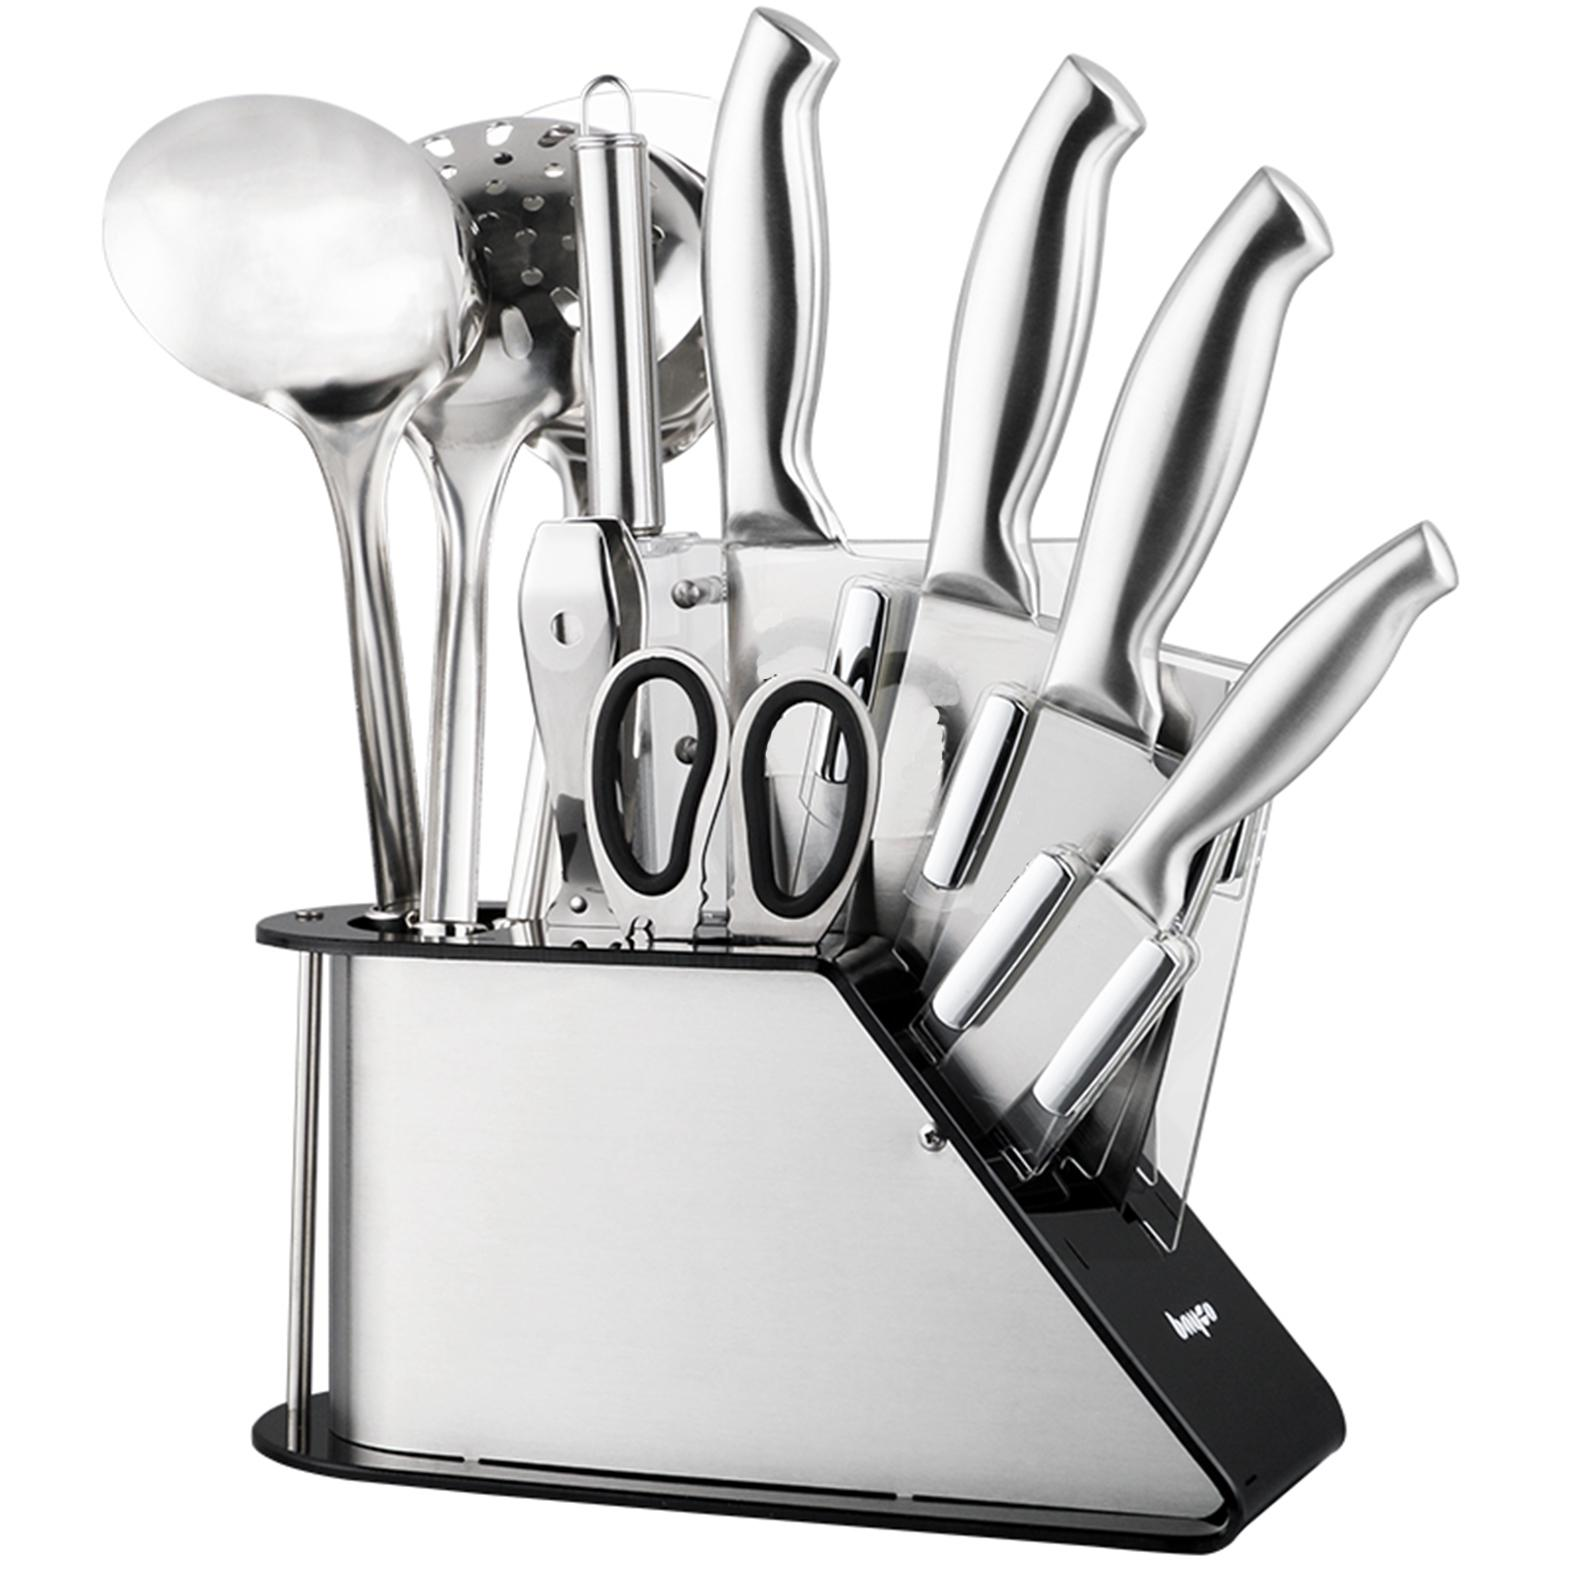 Jiji (platinum 304 Stainless Steel Kitchen 9 Pcs Set) / Kitchen Utensils / Cookware (sg) By Jiji.